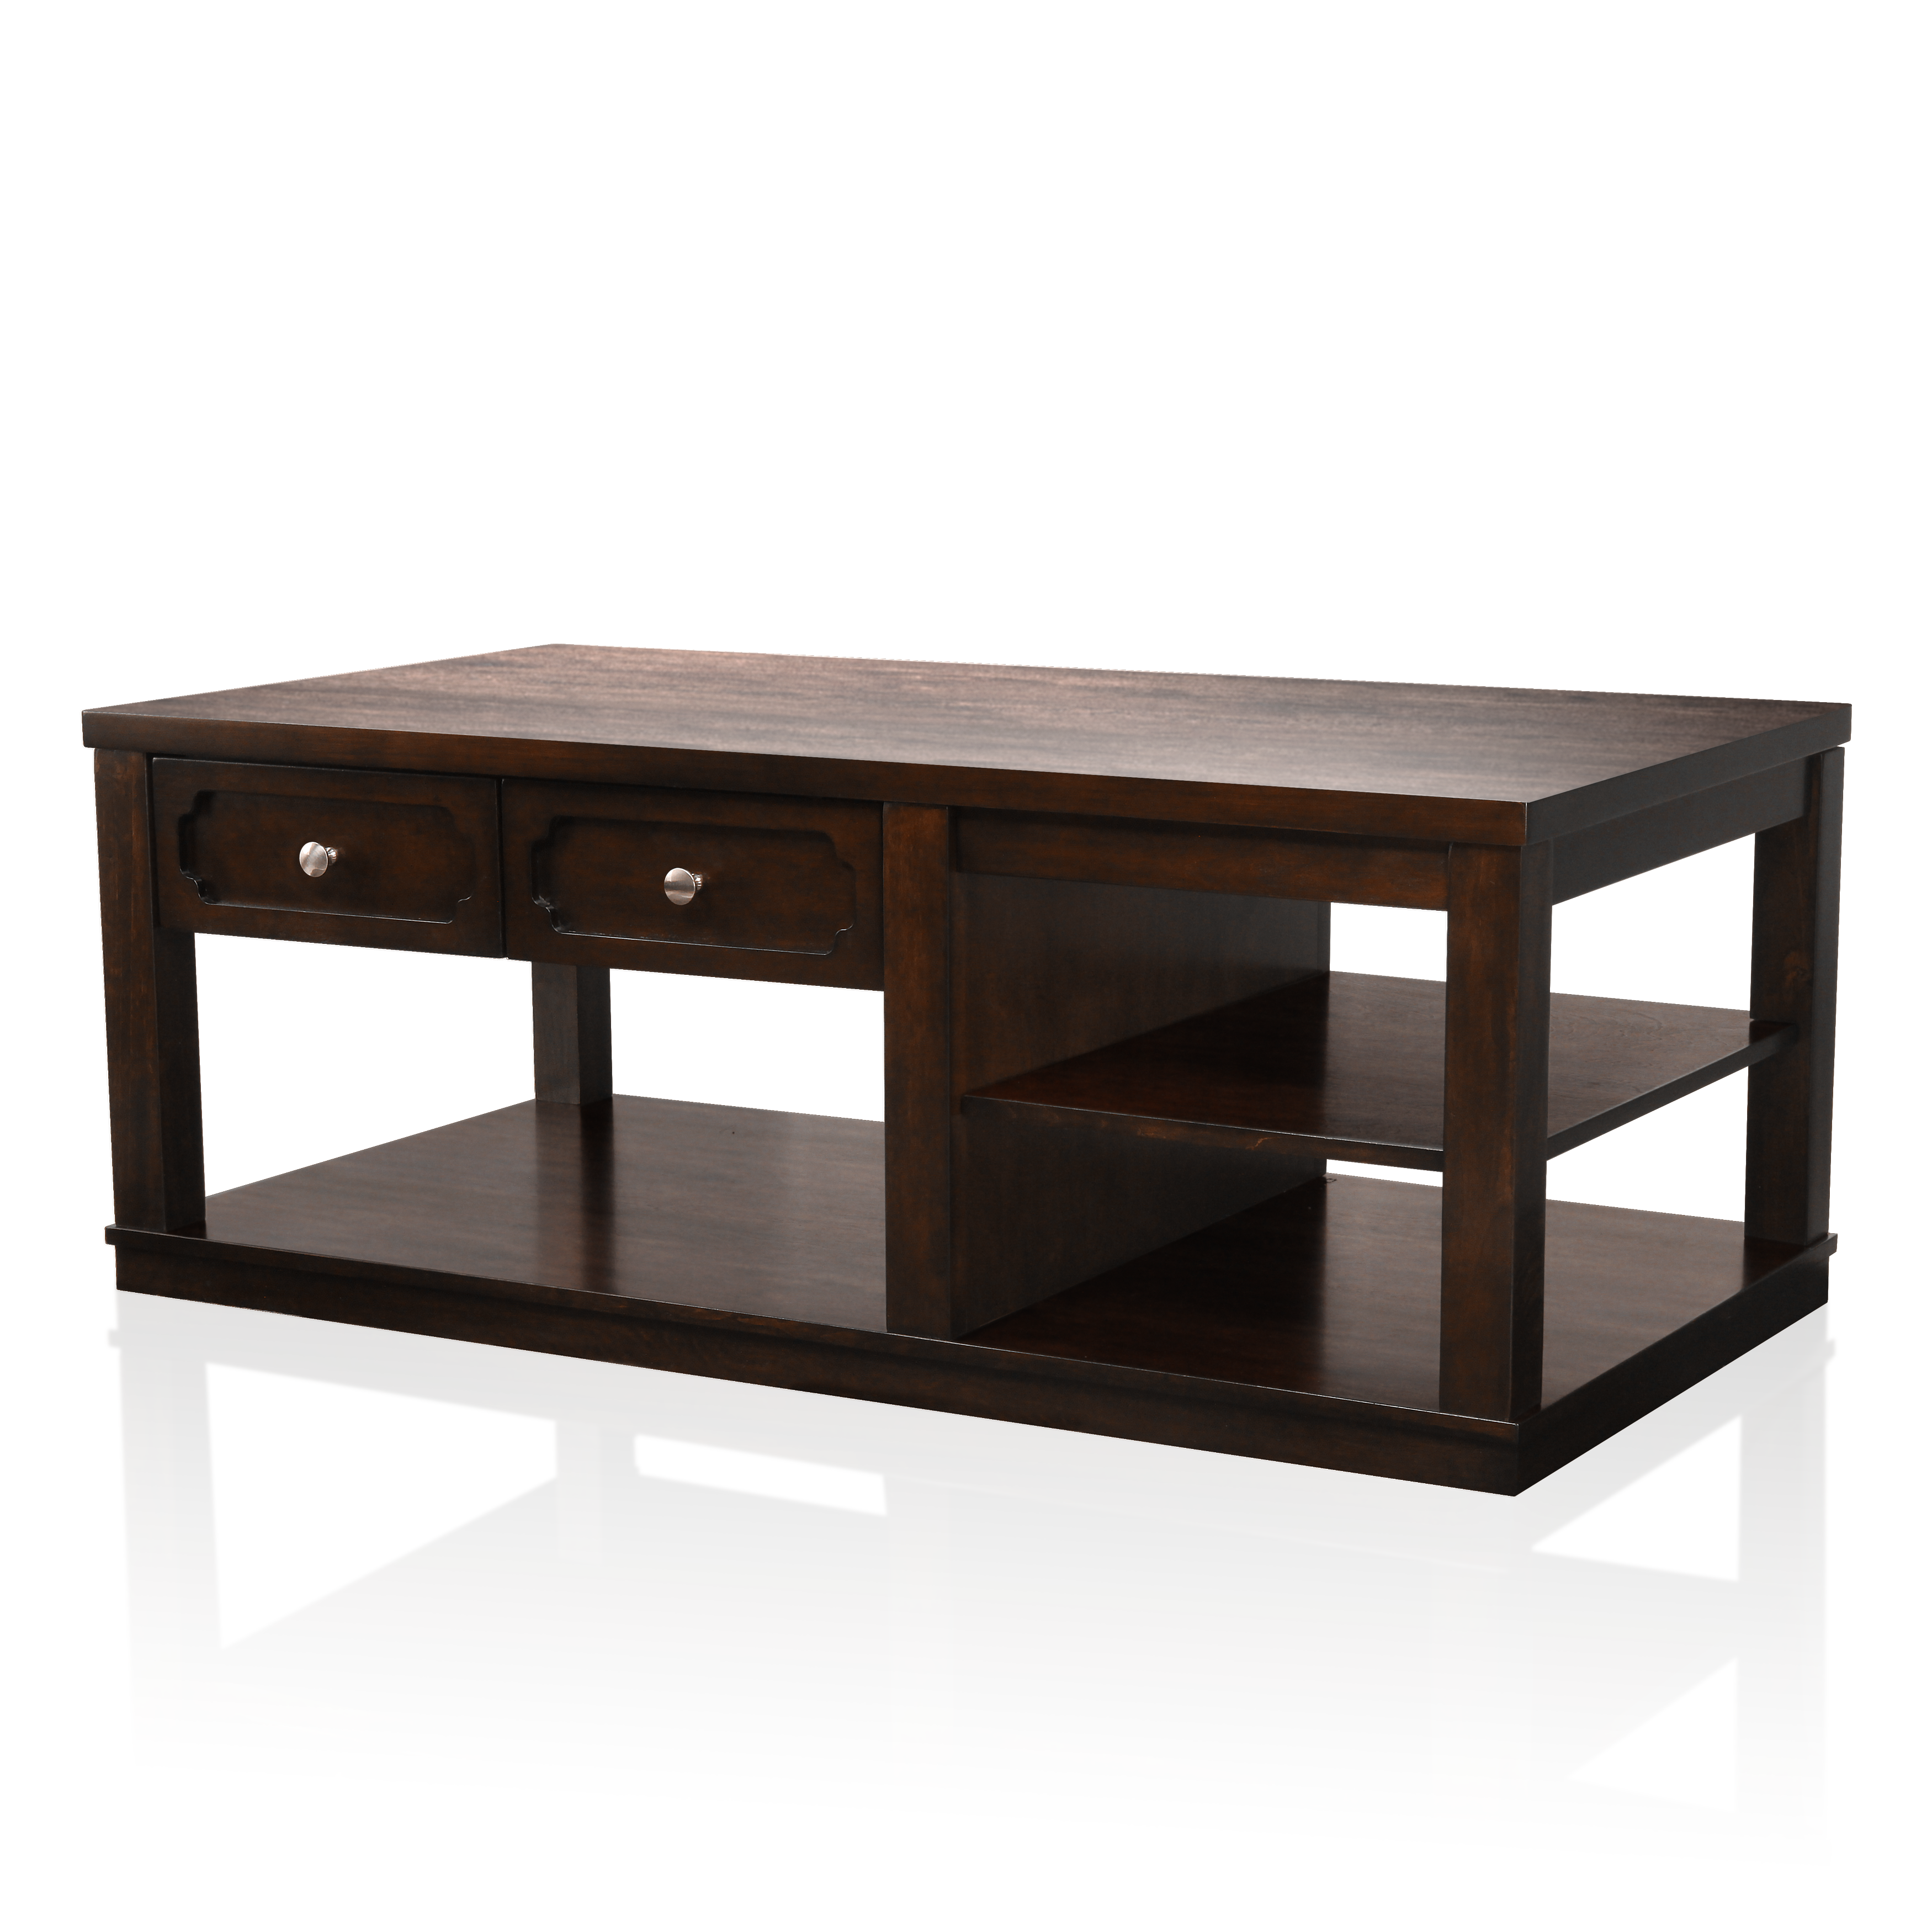 Divonne Brown Cherry Finish Coffee Table In 2020 Coffee Table Table Coffee Table Dimensions [ 3500 x 3500 Pixel ]